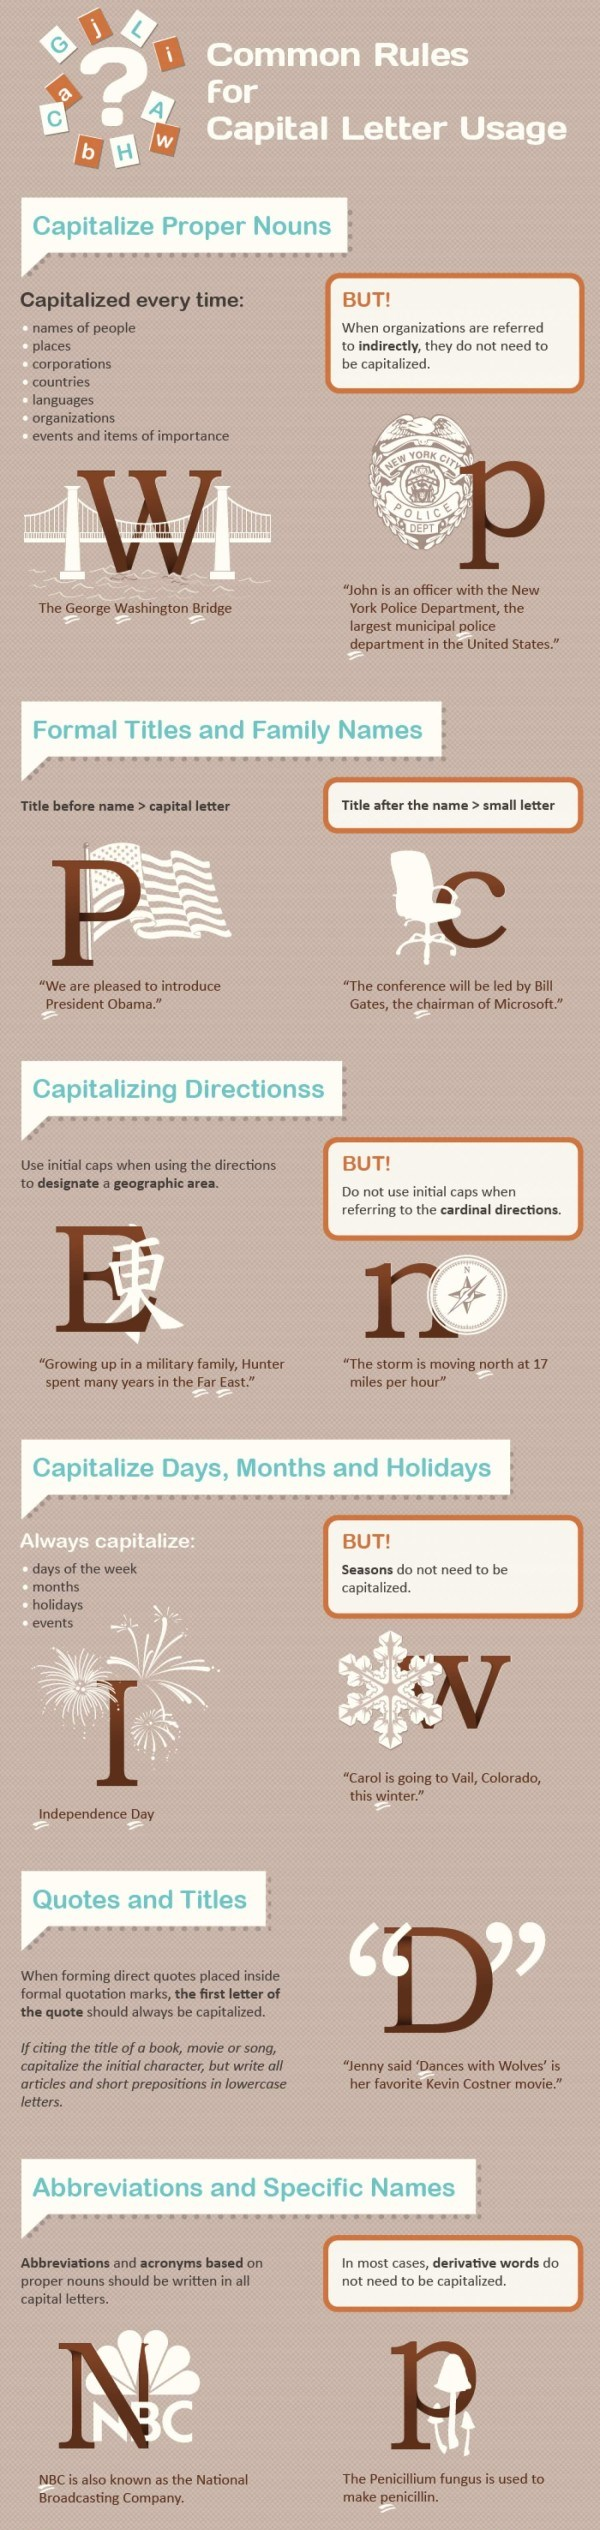 common-rules-for-capital-letters-e1427560698859